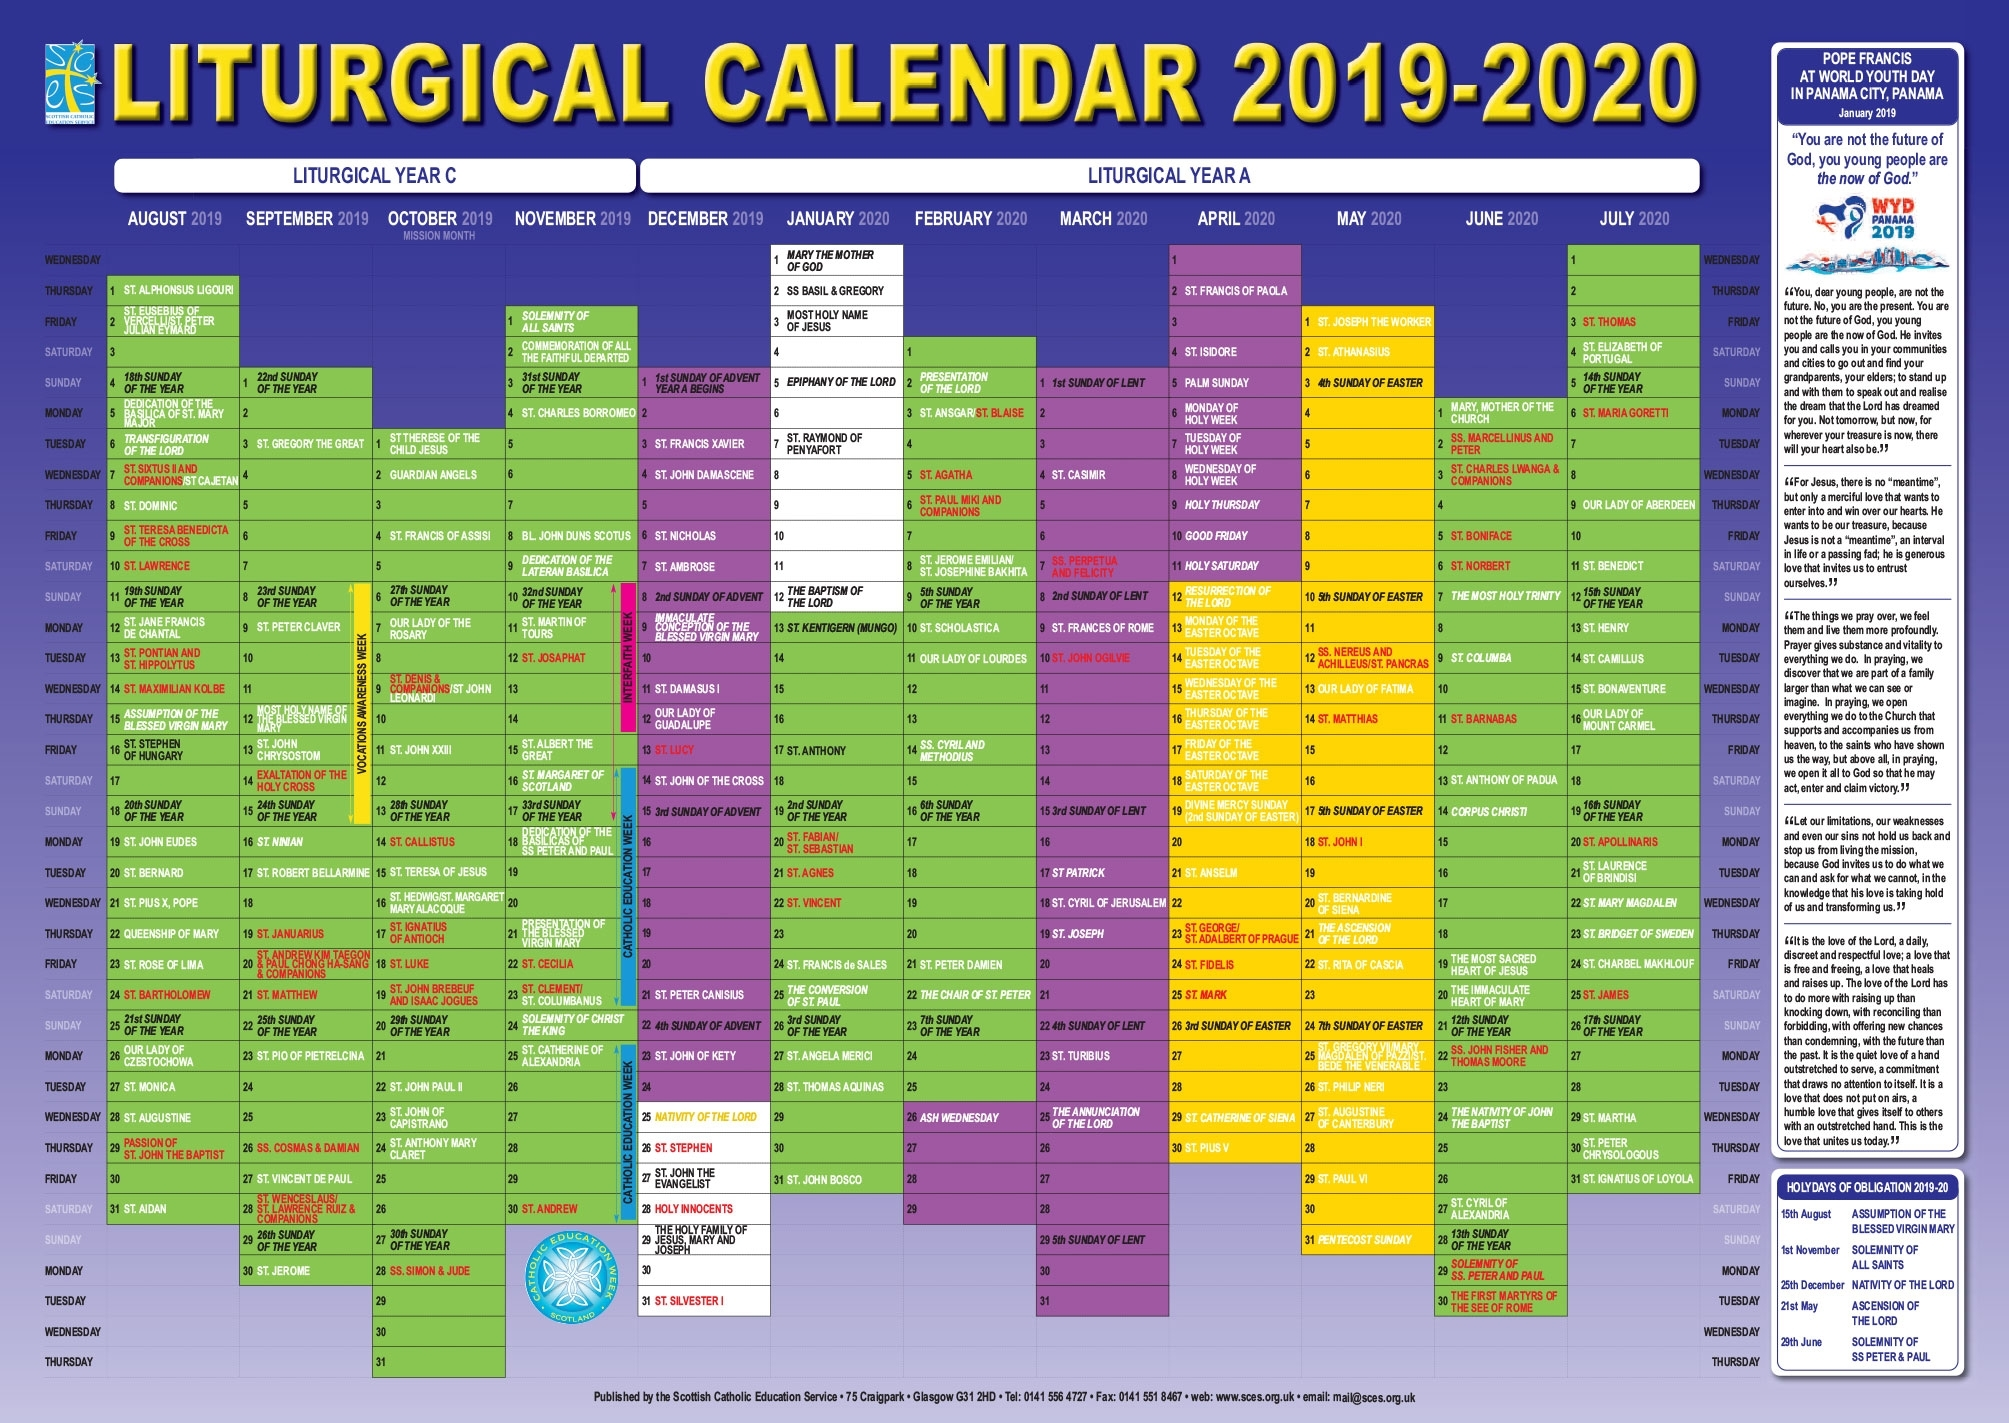 Scottish Catholic Education Service | Sces | Liturgical within Liturgical Calendar For Yearr 2020